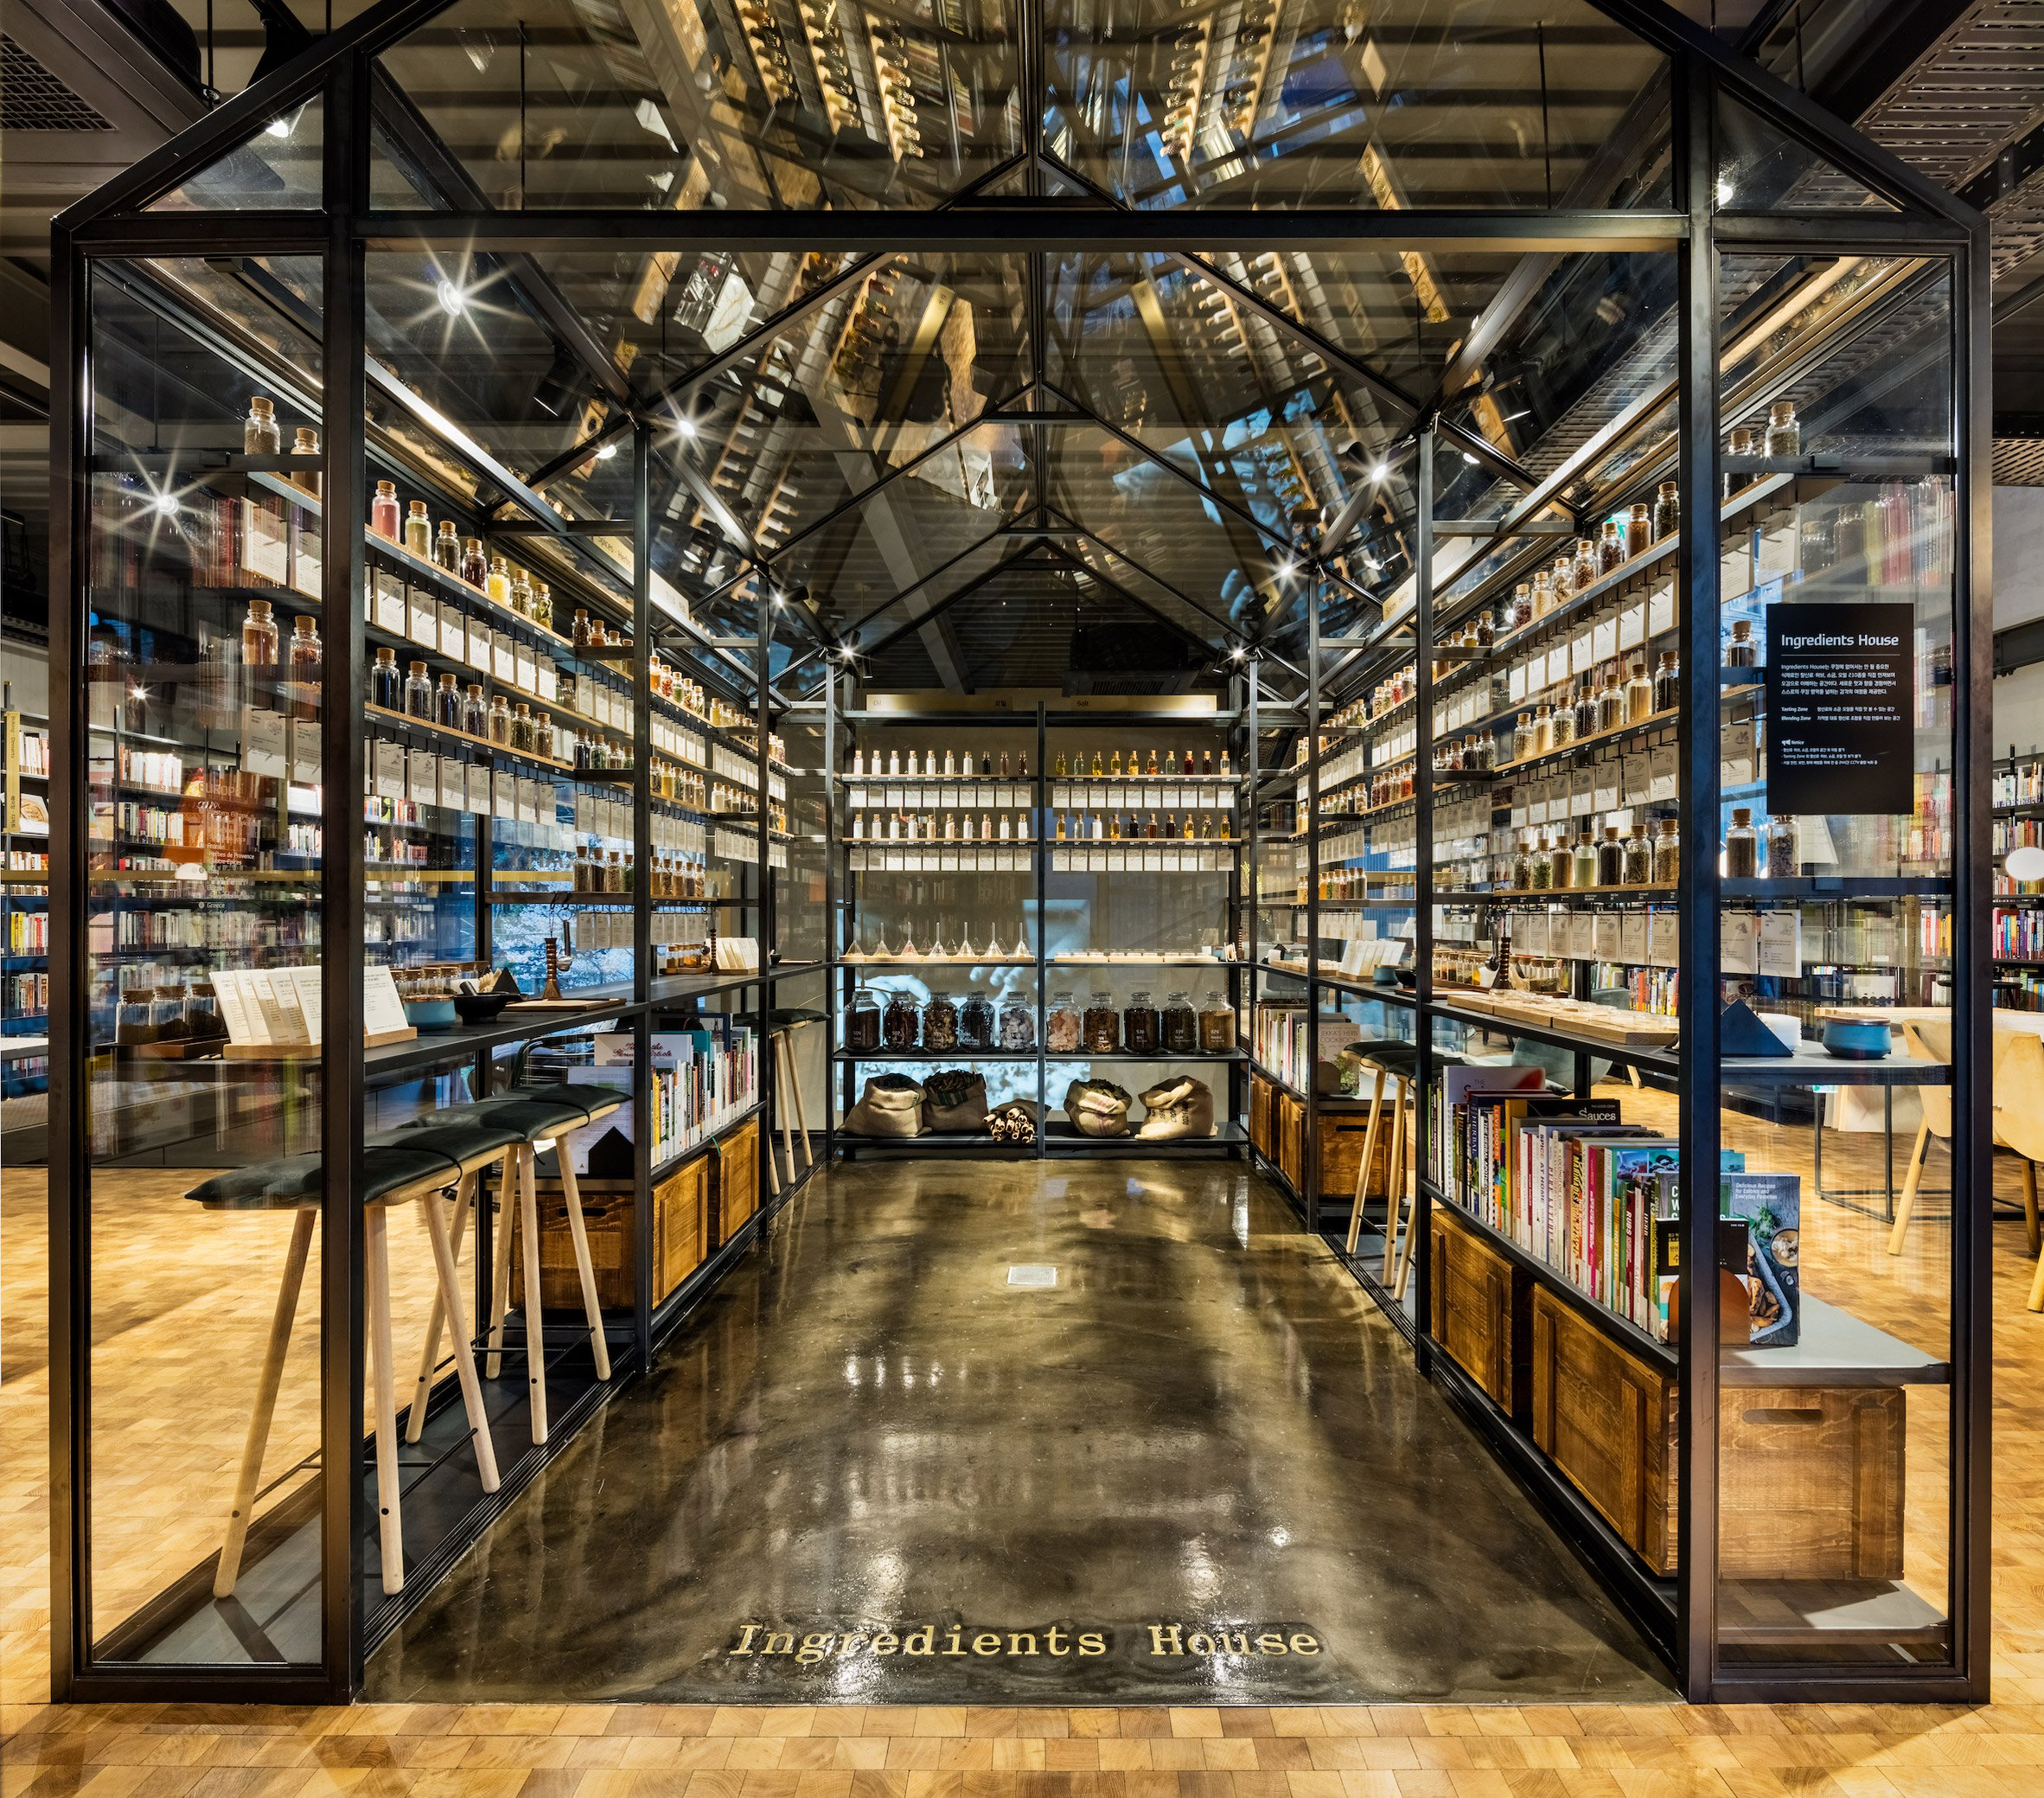 cooking-library-blacksheep-interiors_dezeen_2364_col_25.jpg